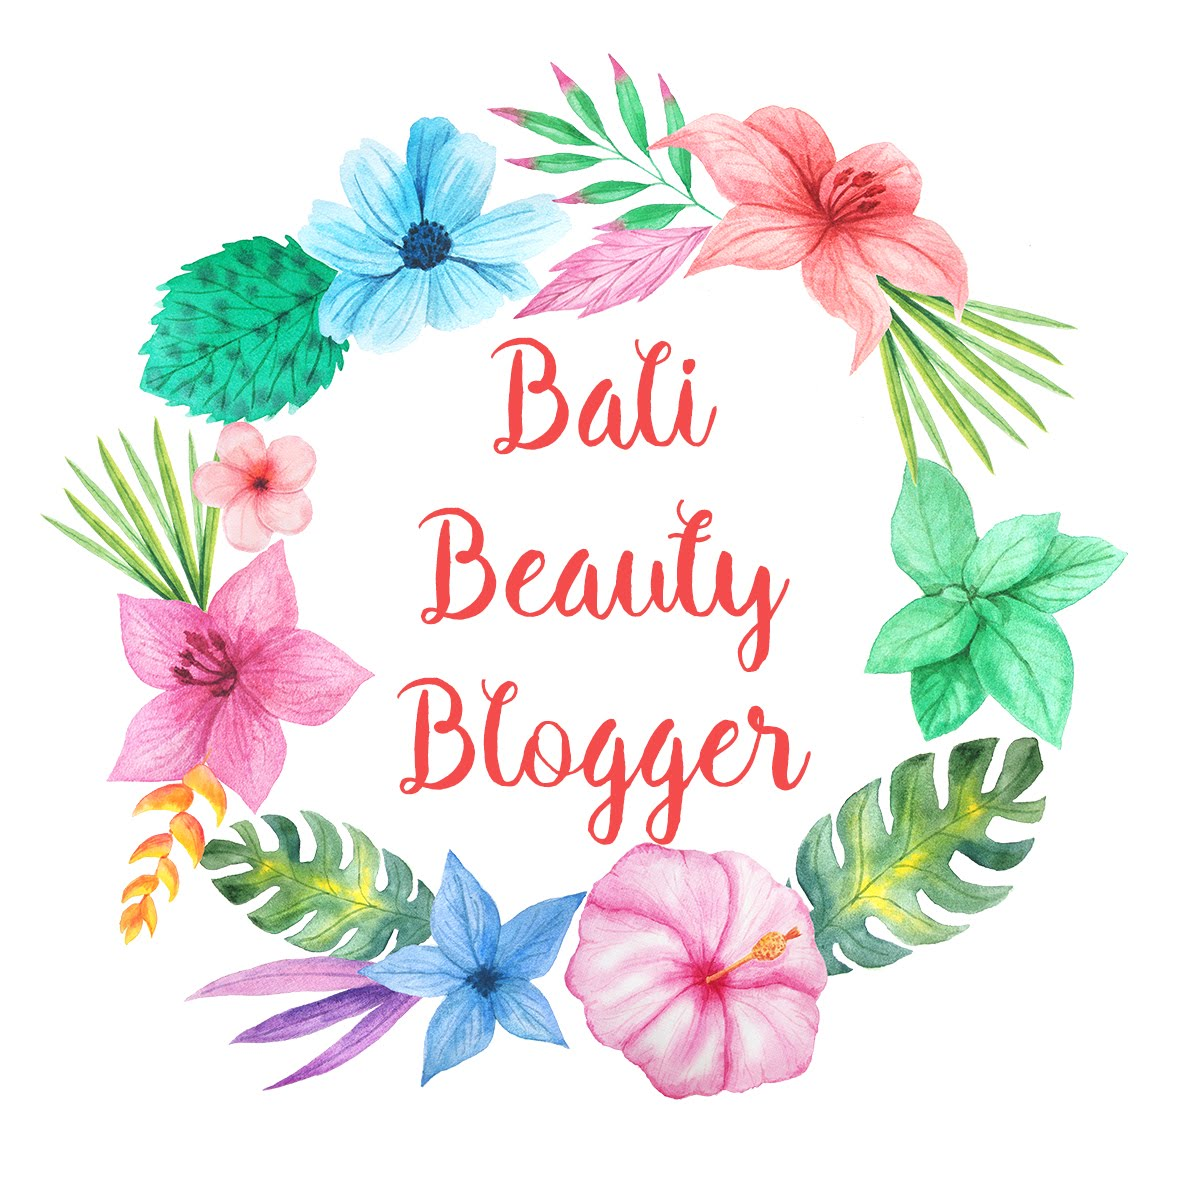 Part of Bali Beauty Blogger